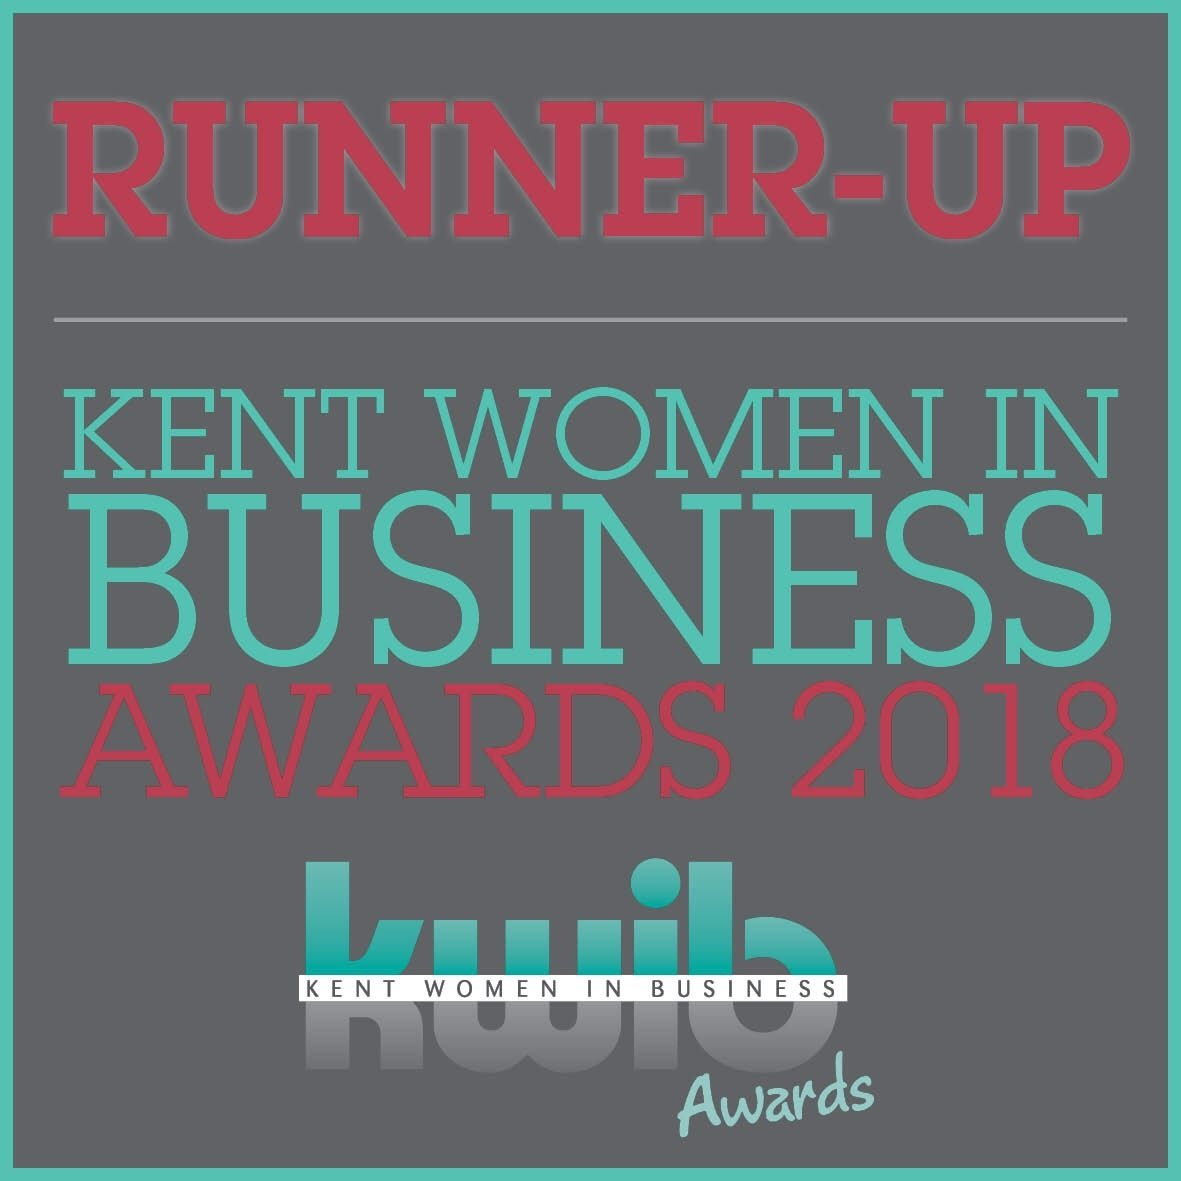 Jude Hill of Sadness to Sunshine wins Runner up at Kent Women in Business Awards as Entrepreneur of the year